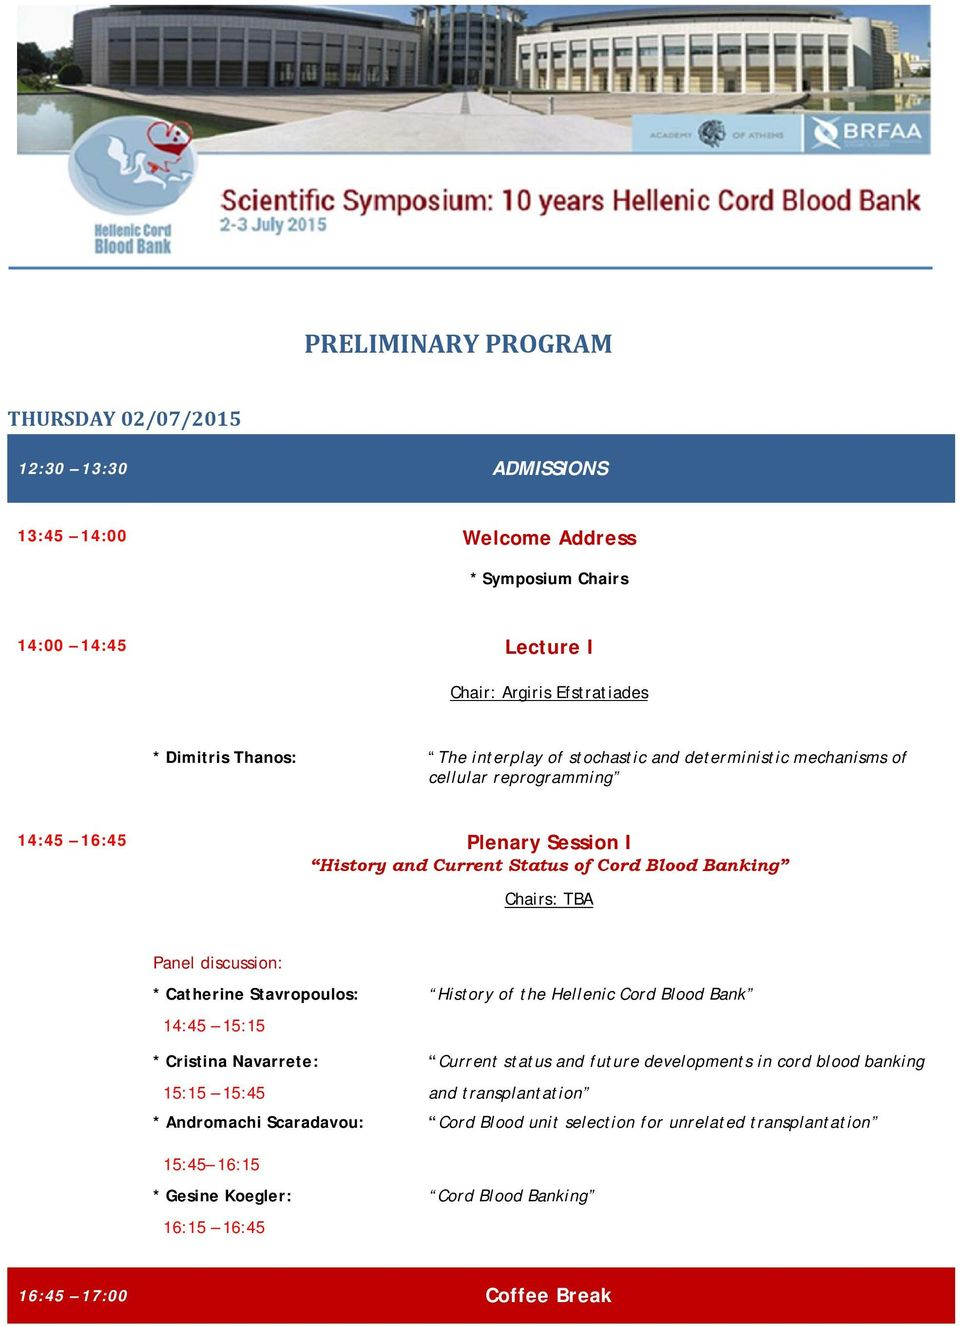 Catherine Stavropoulos: History of the Hellenic Cord Blood Bank 14:45 15:15 * Cristina Navarrete: Current status and future developments in cord blood banking 15:15 15:45 and